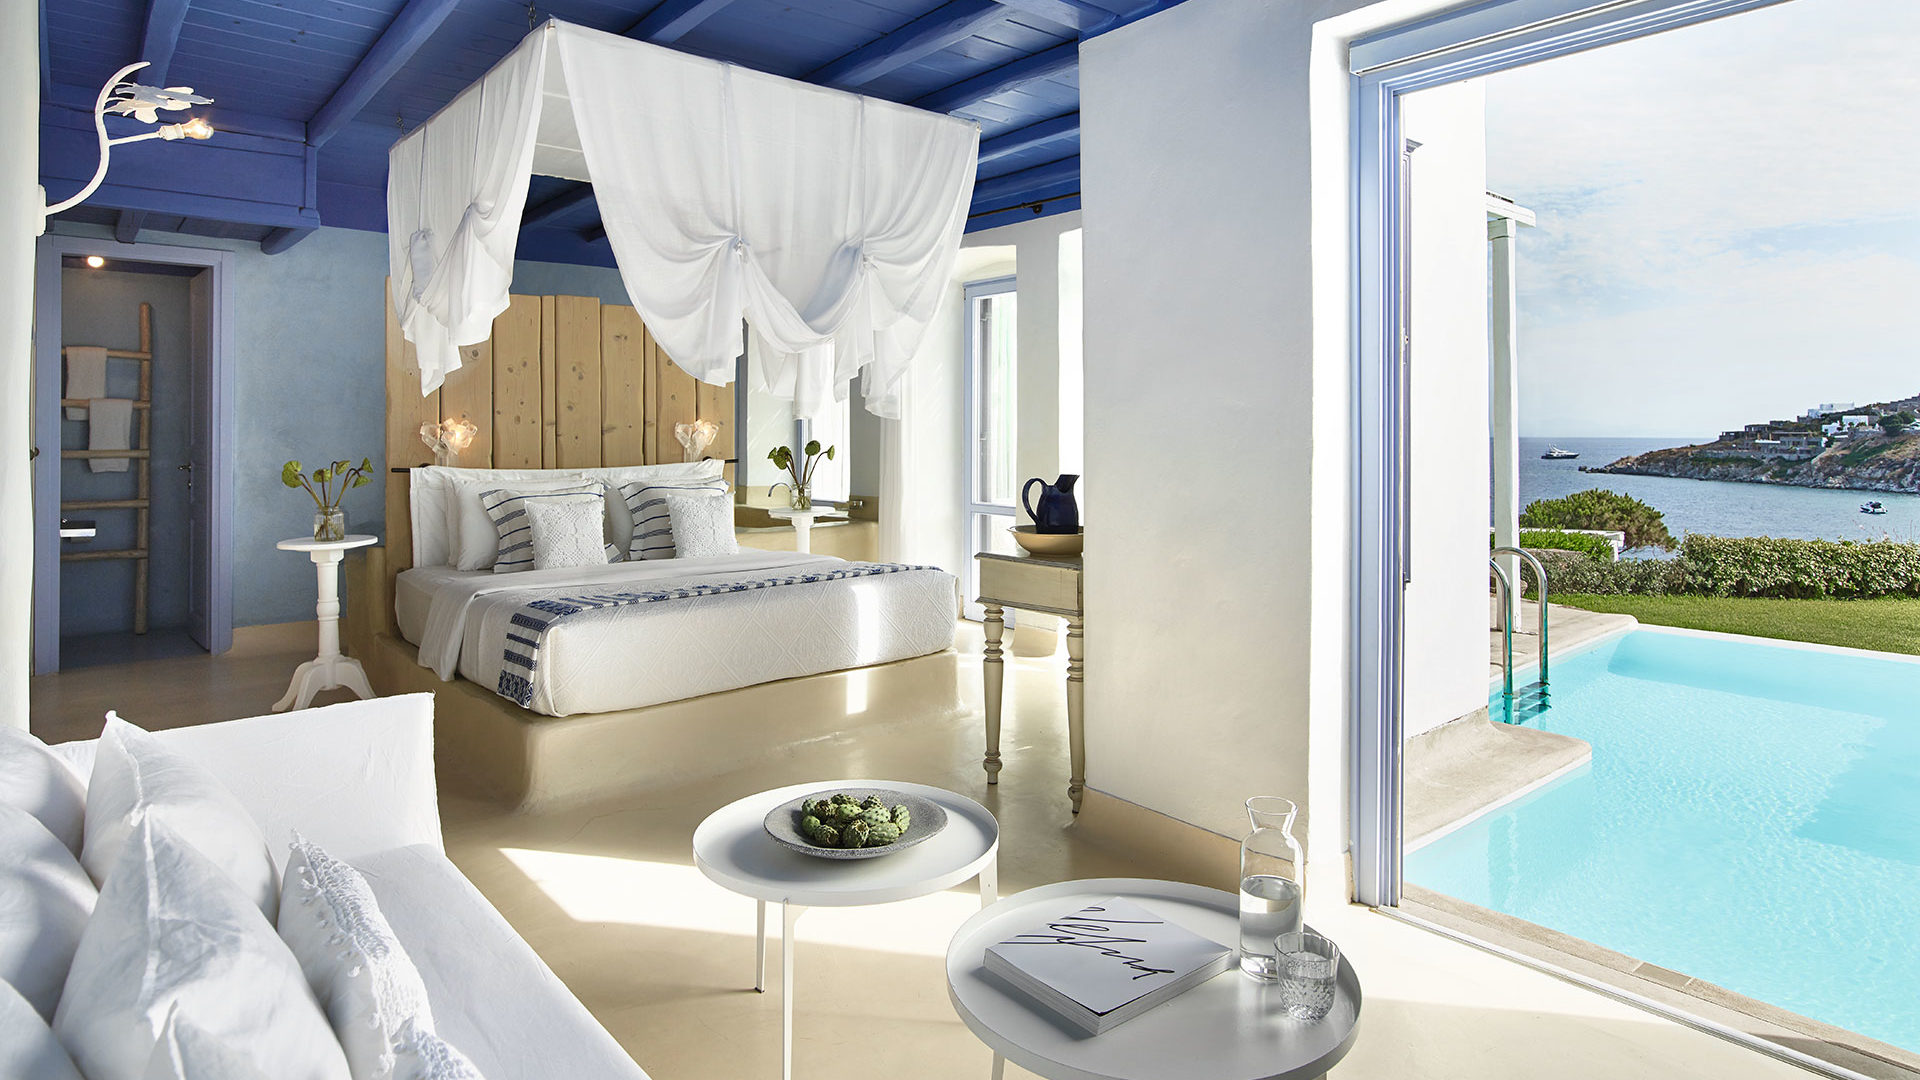 Mykonos_Blu-27-Endless-Blu-Villa-with-Private-Pool,-Master-Bedroom-with-King-Size-Bed-Overlooking-the-Sea_72dpi